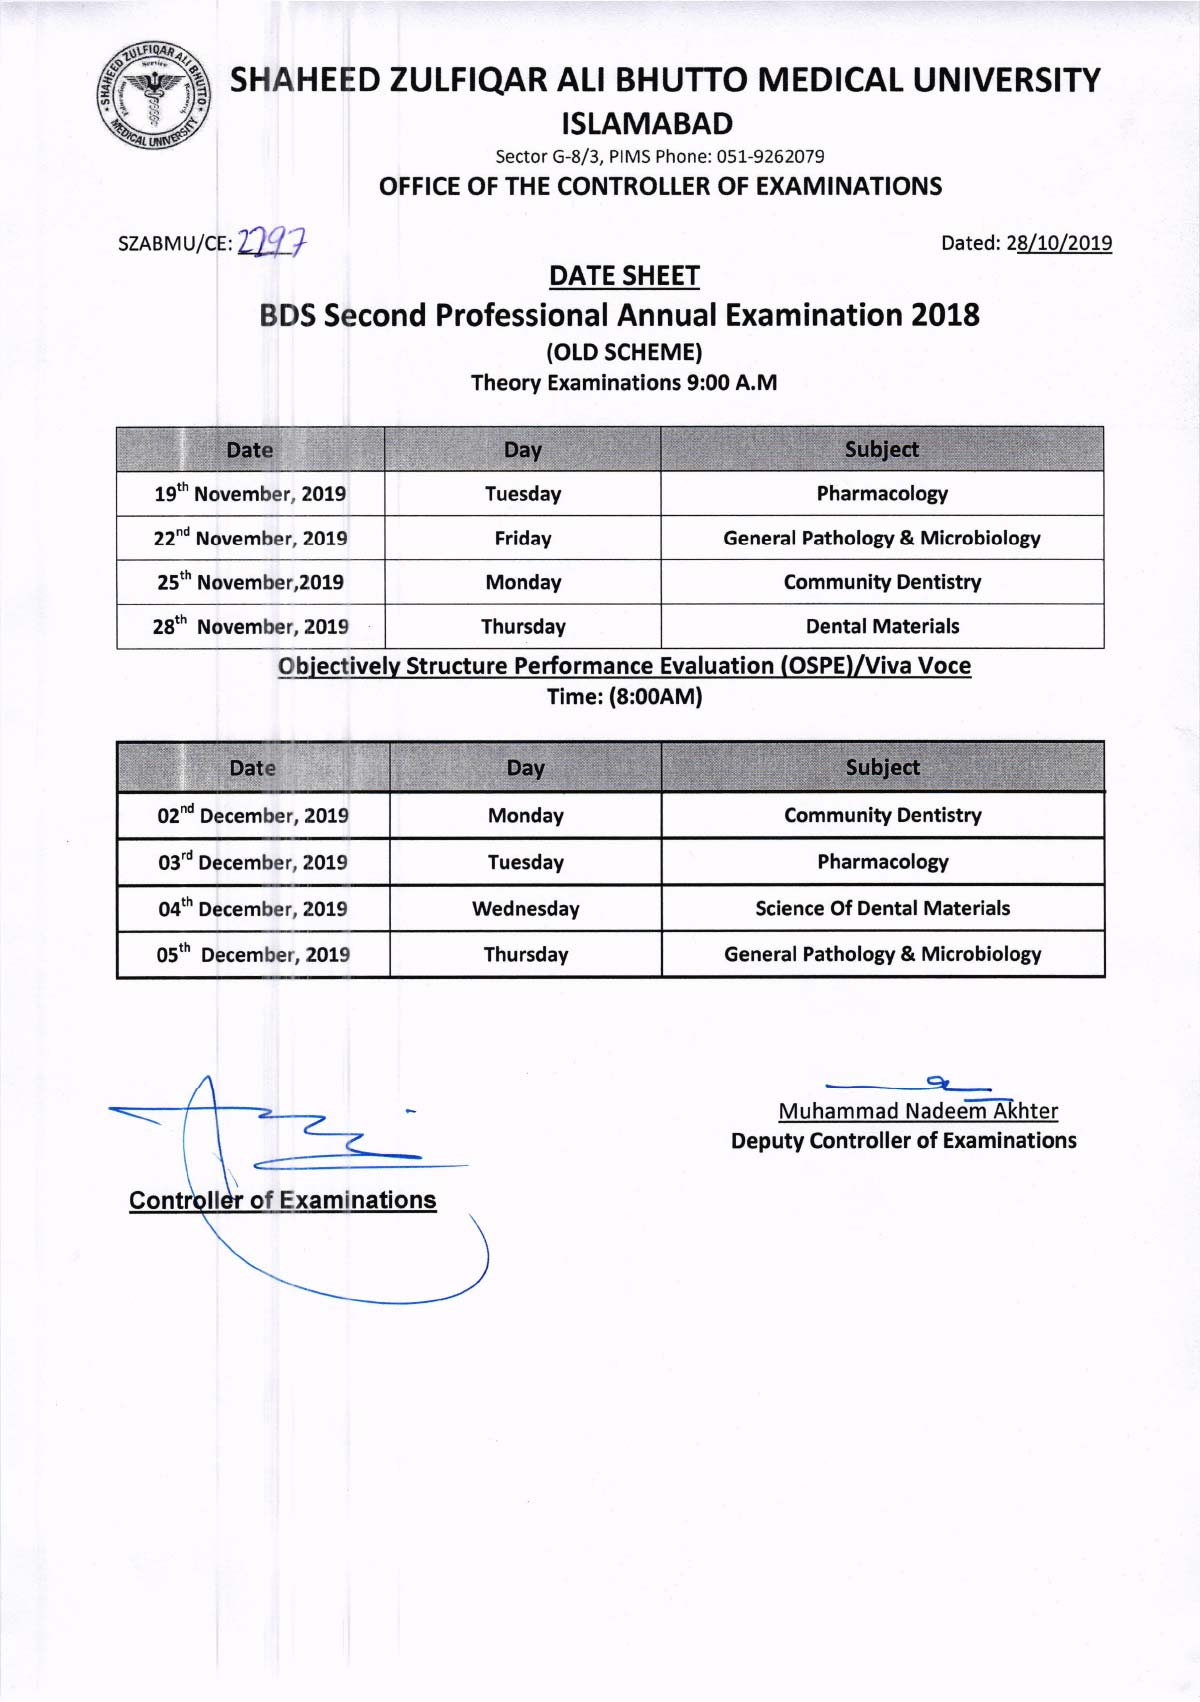 Revised Date Sheet of BDS 2nd Professionals Annual Examination 2019